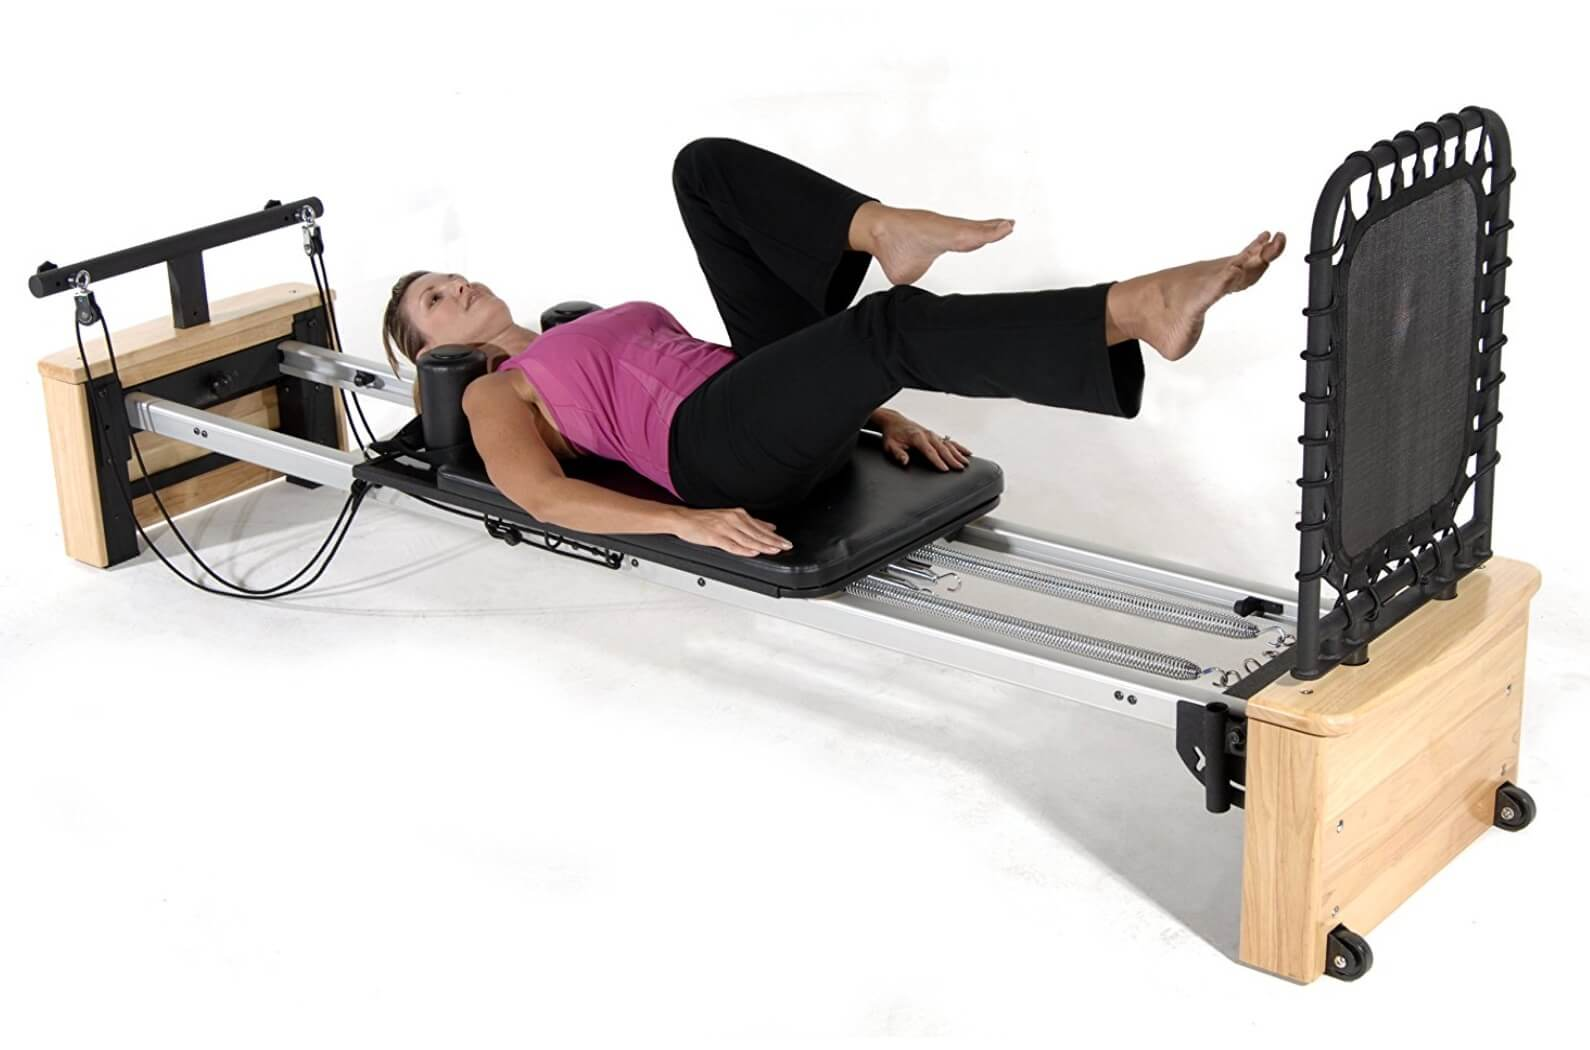 Stamina AeroPilates Pro XP 557 Home Pilates Reformer